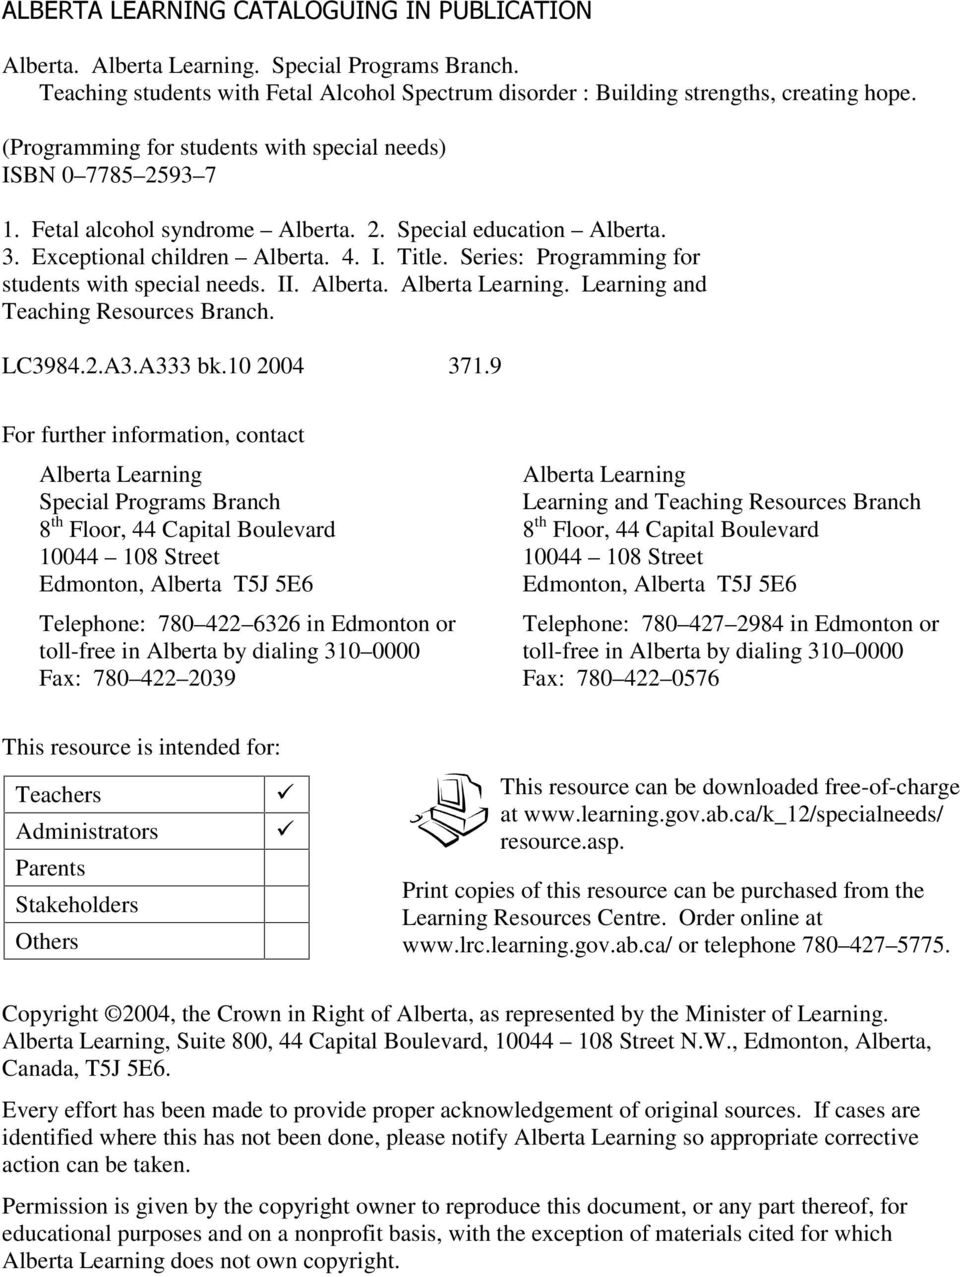 Series: Programming for students with special needs. II. Alberta. Alberta Learning. Learning and Teaching Resources Branch. LC3984.2.A3.A333 bk.10 2004 371.